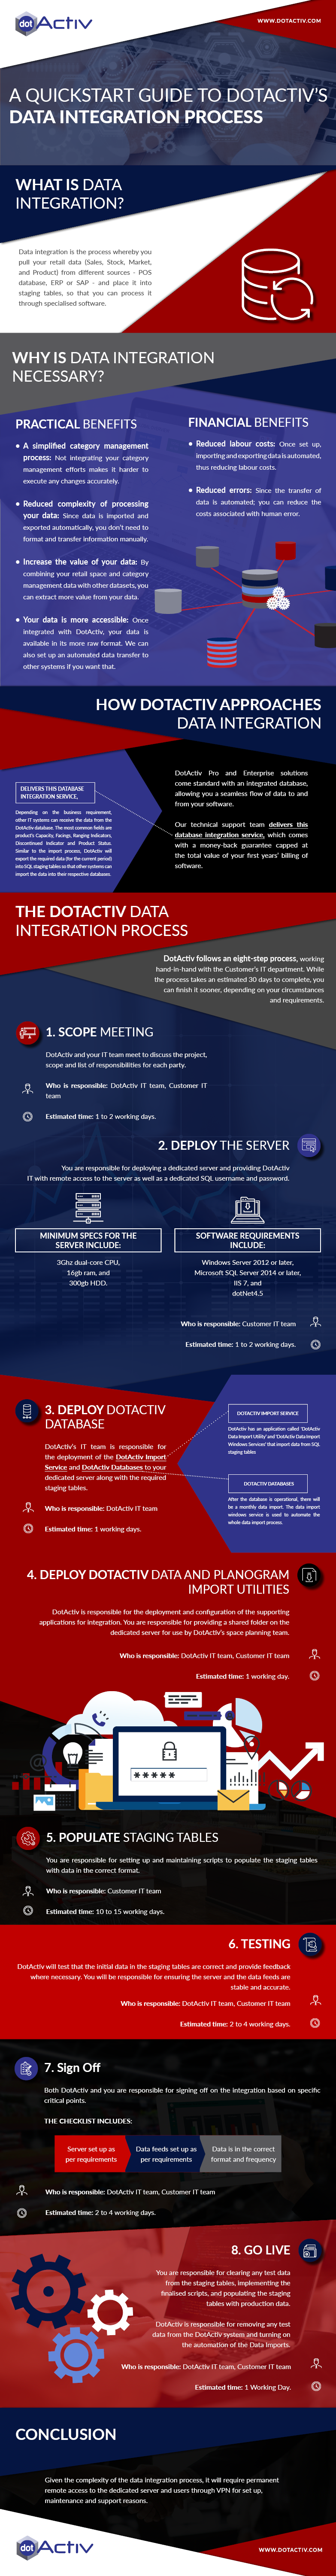 DotActiv Data Integration Process Infographic